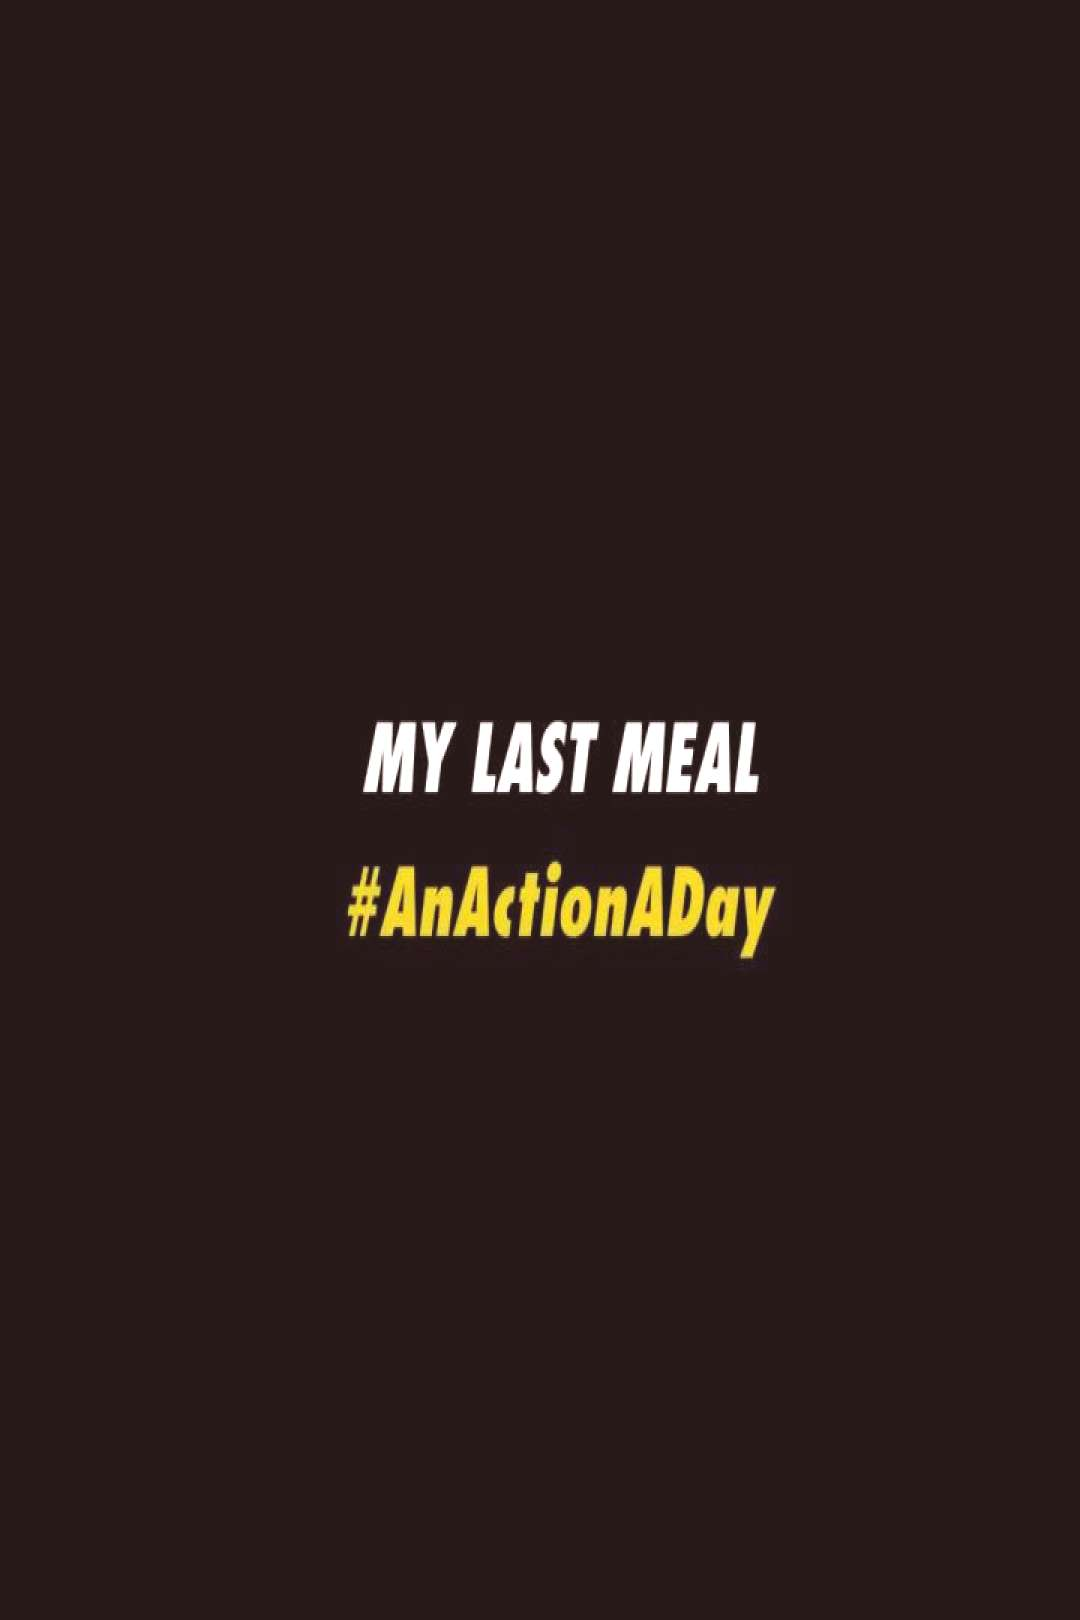 What will be your last meal of the day? Check out our Facebook pa